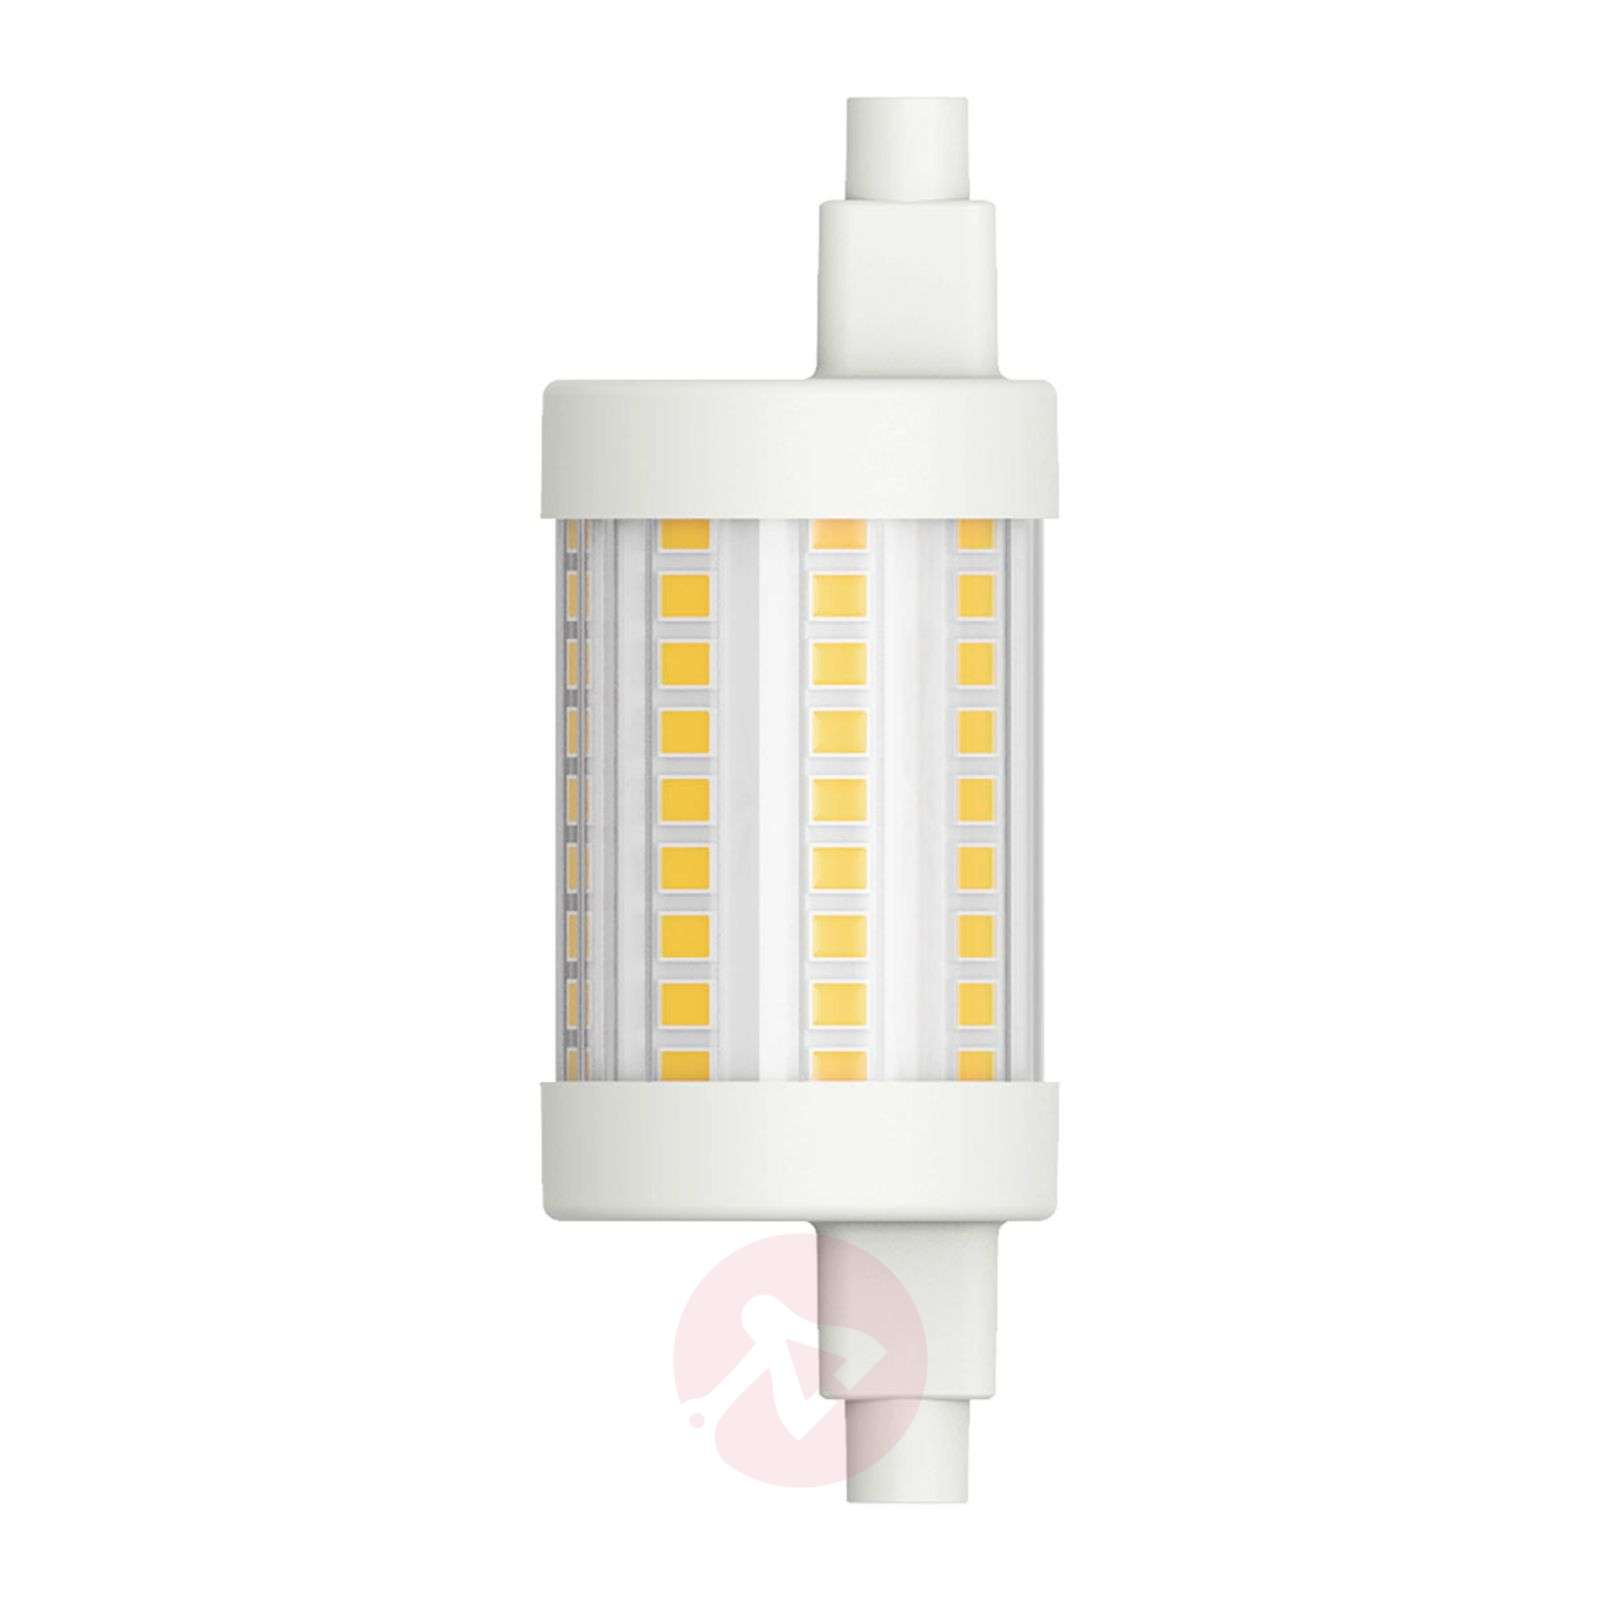 Bombilla tubular LED R7s 78,3 mm 8W, blanco cálido-6520304-01